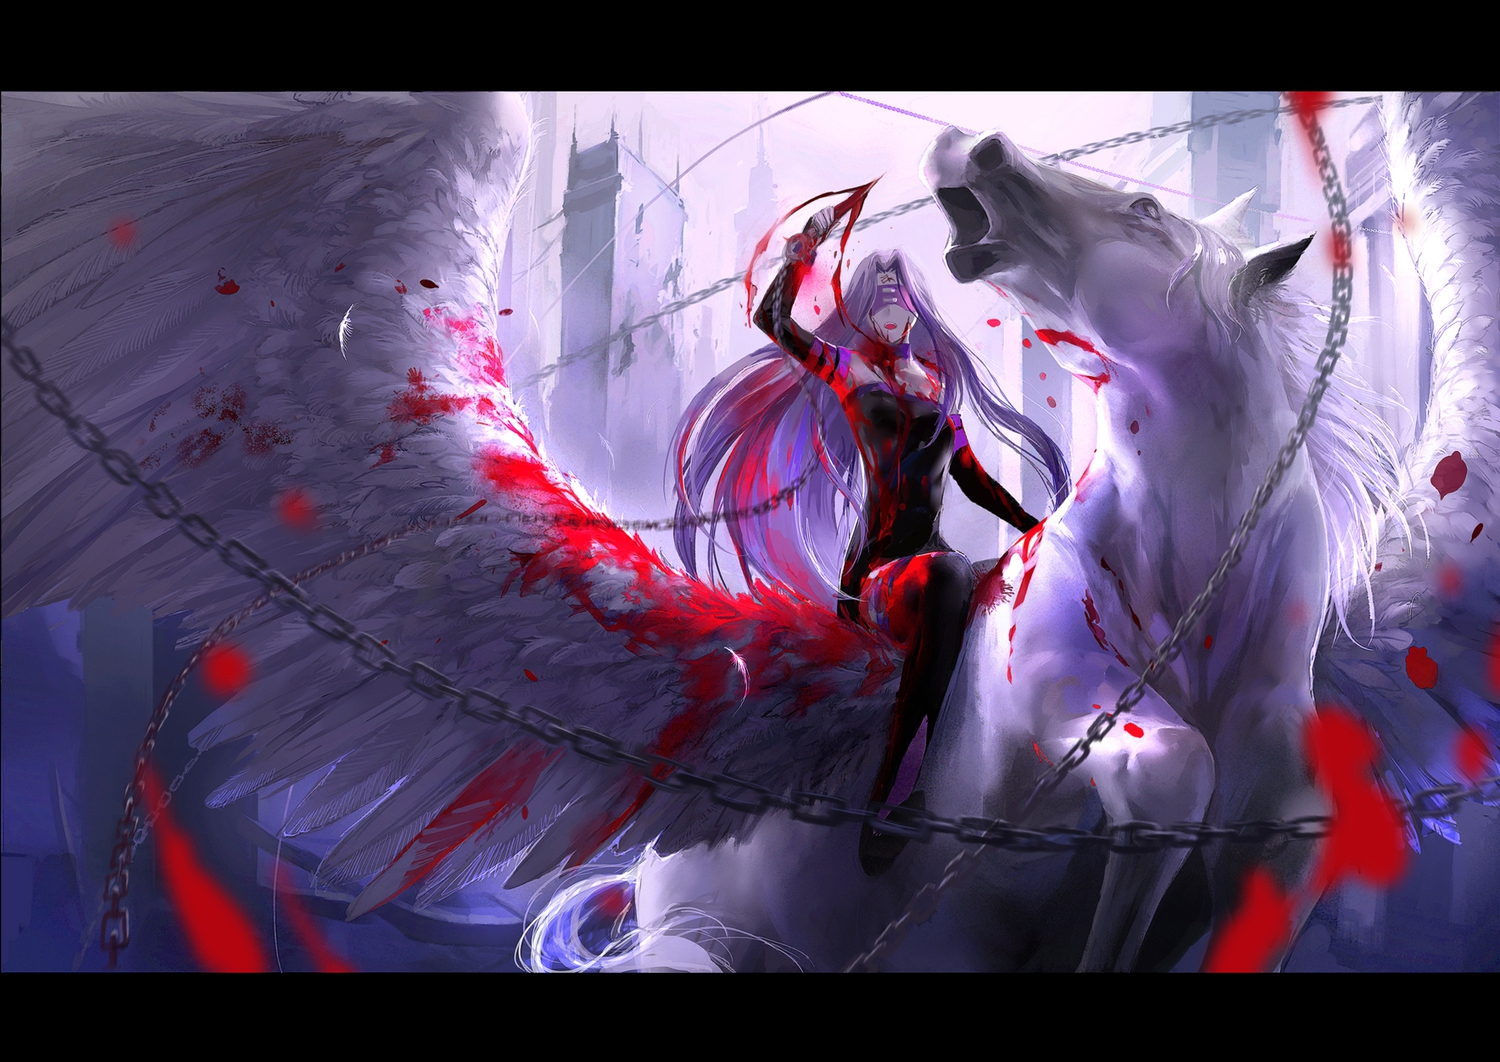 Fate stay night rider wallpaper 13 widescreen wallpaper - Fate stay night wallpaper ...